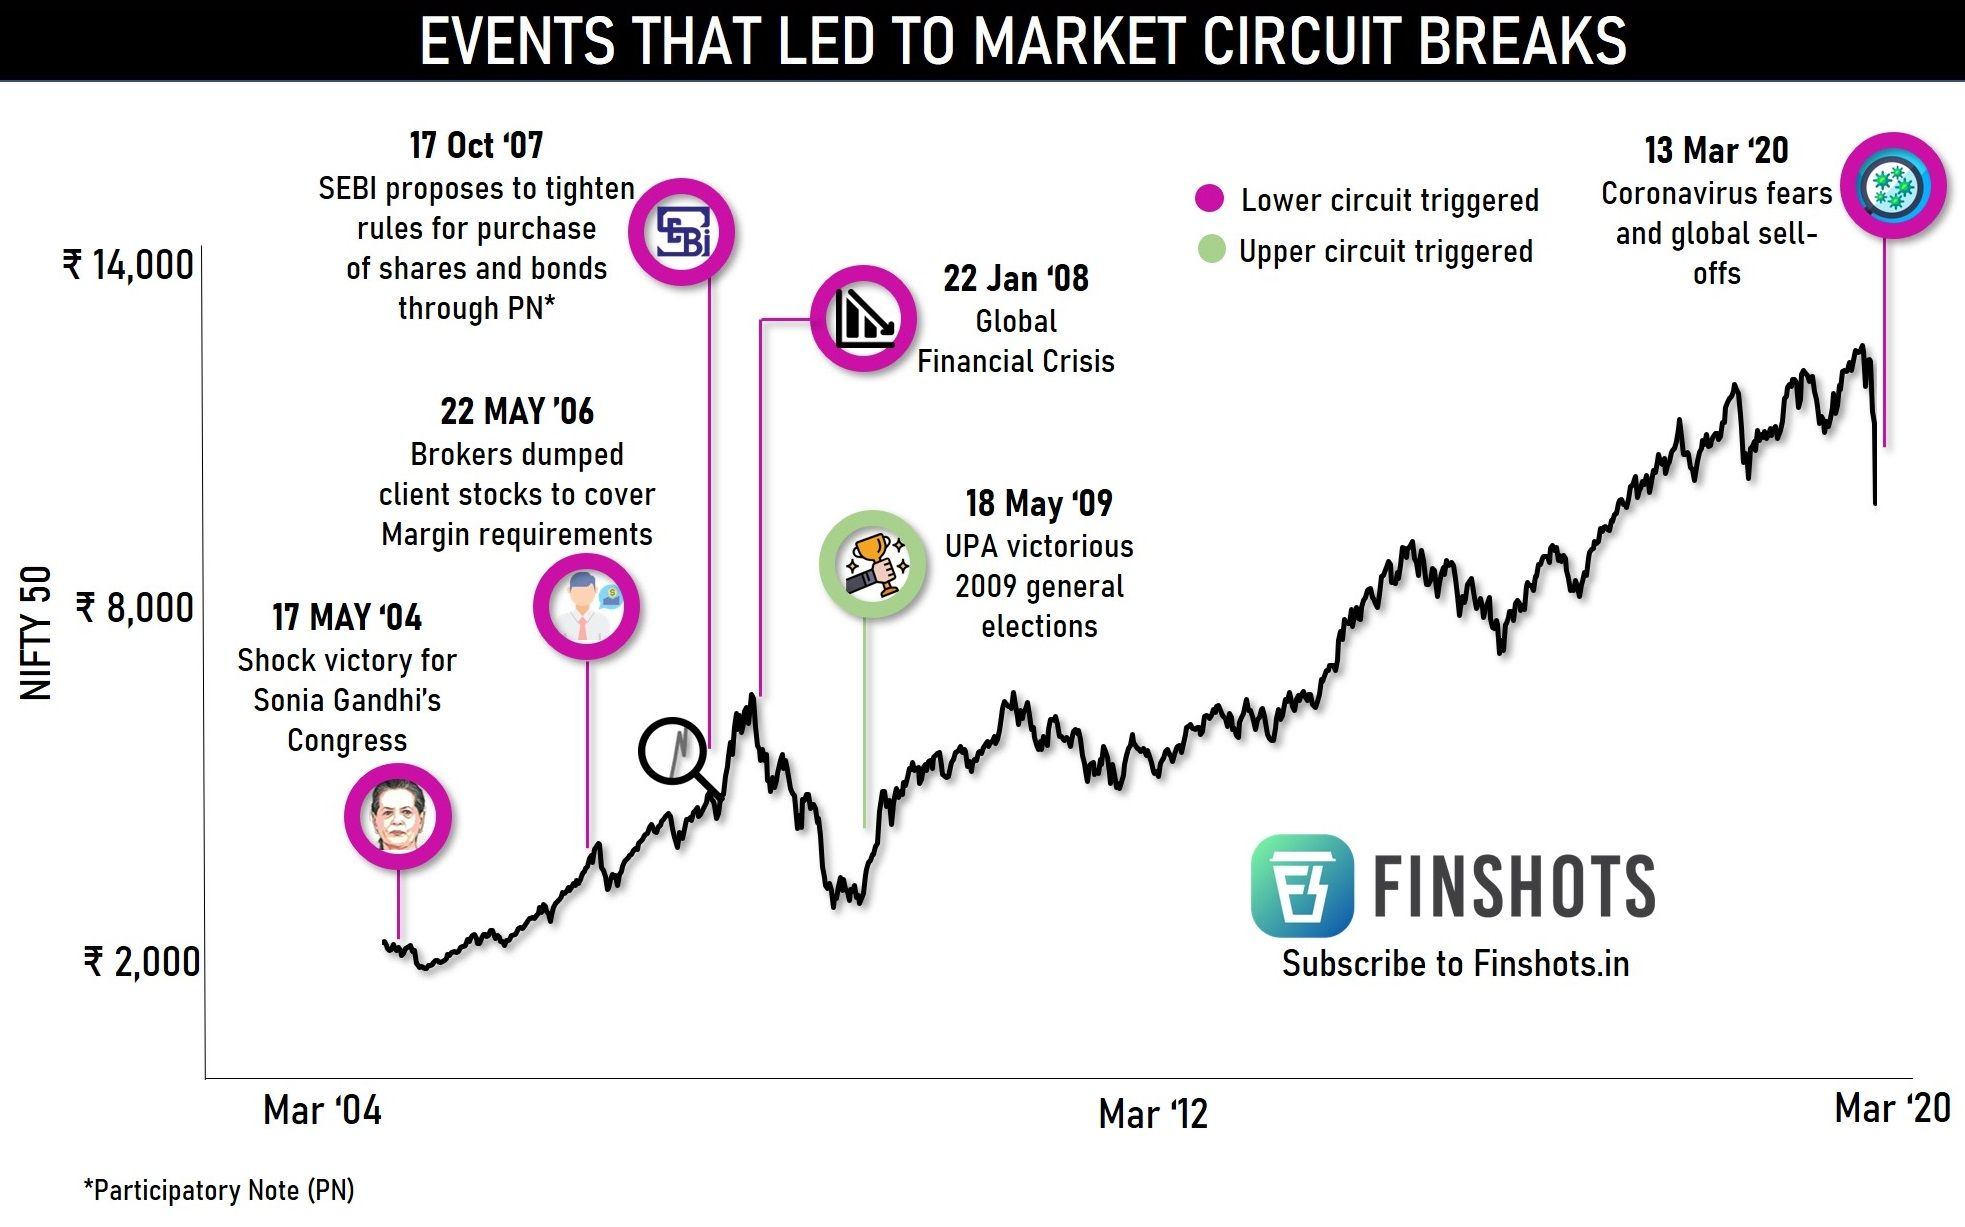 Events that triggered market circuit breakers